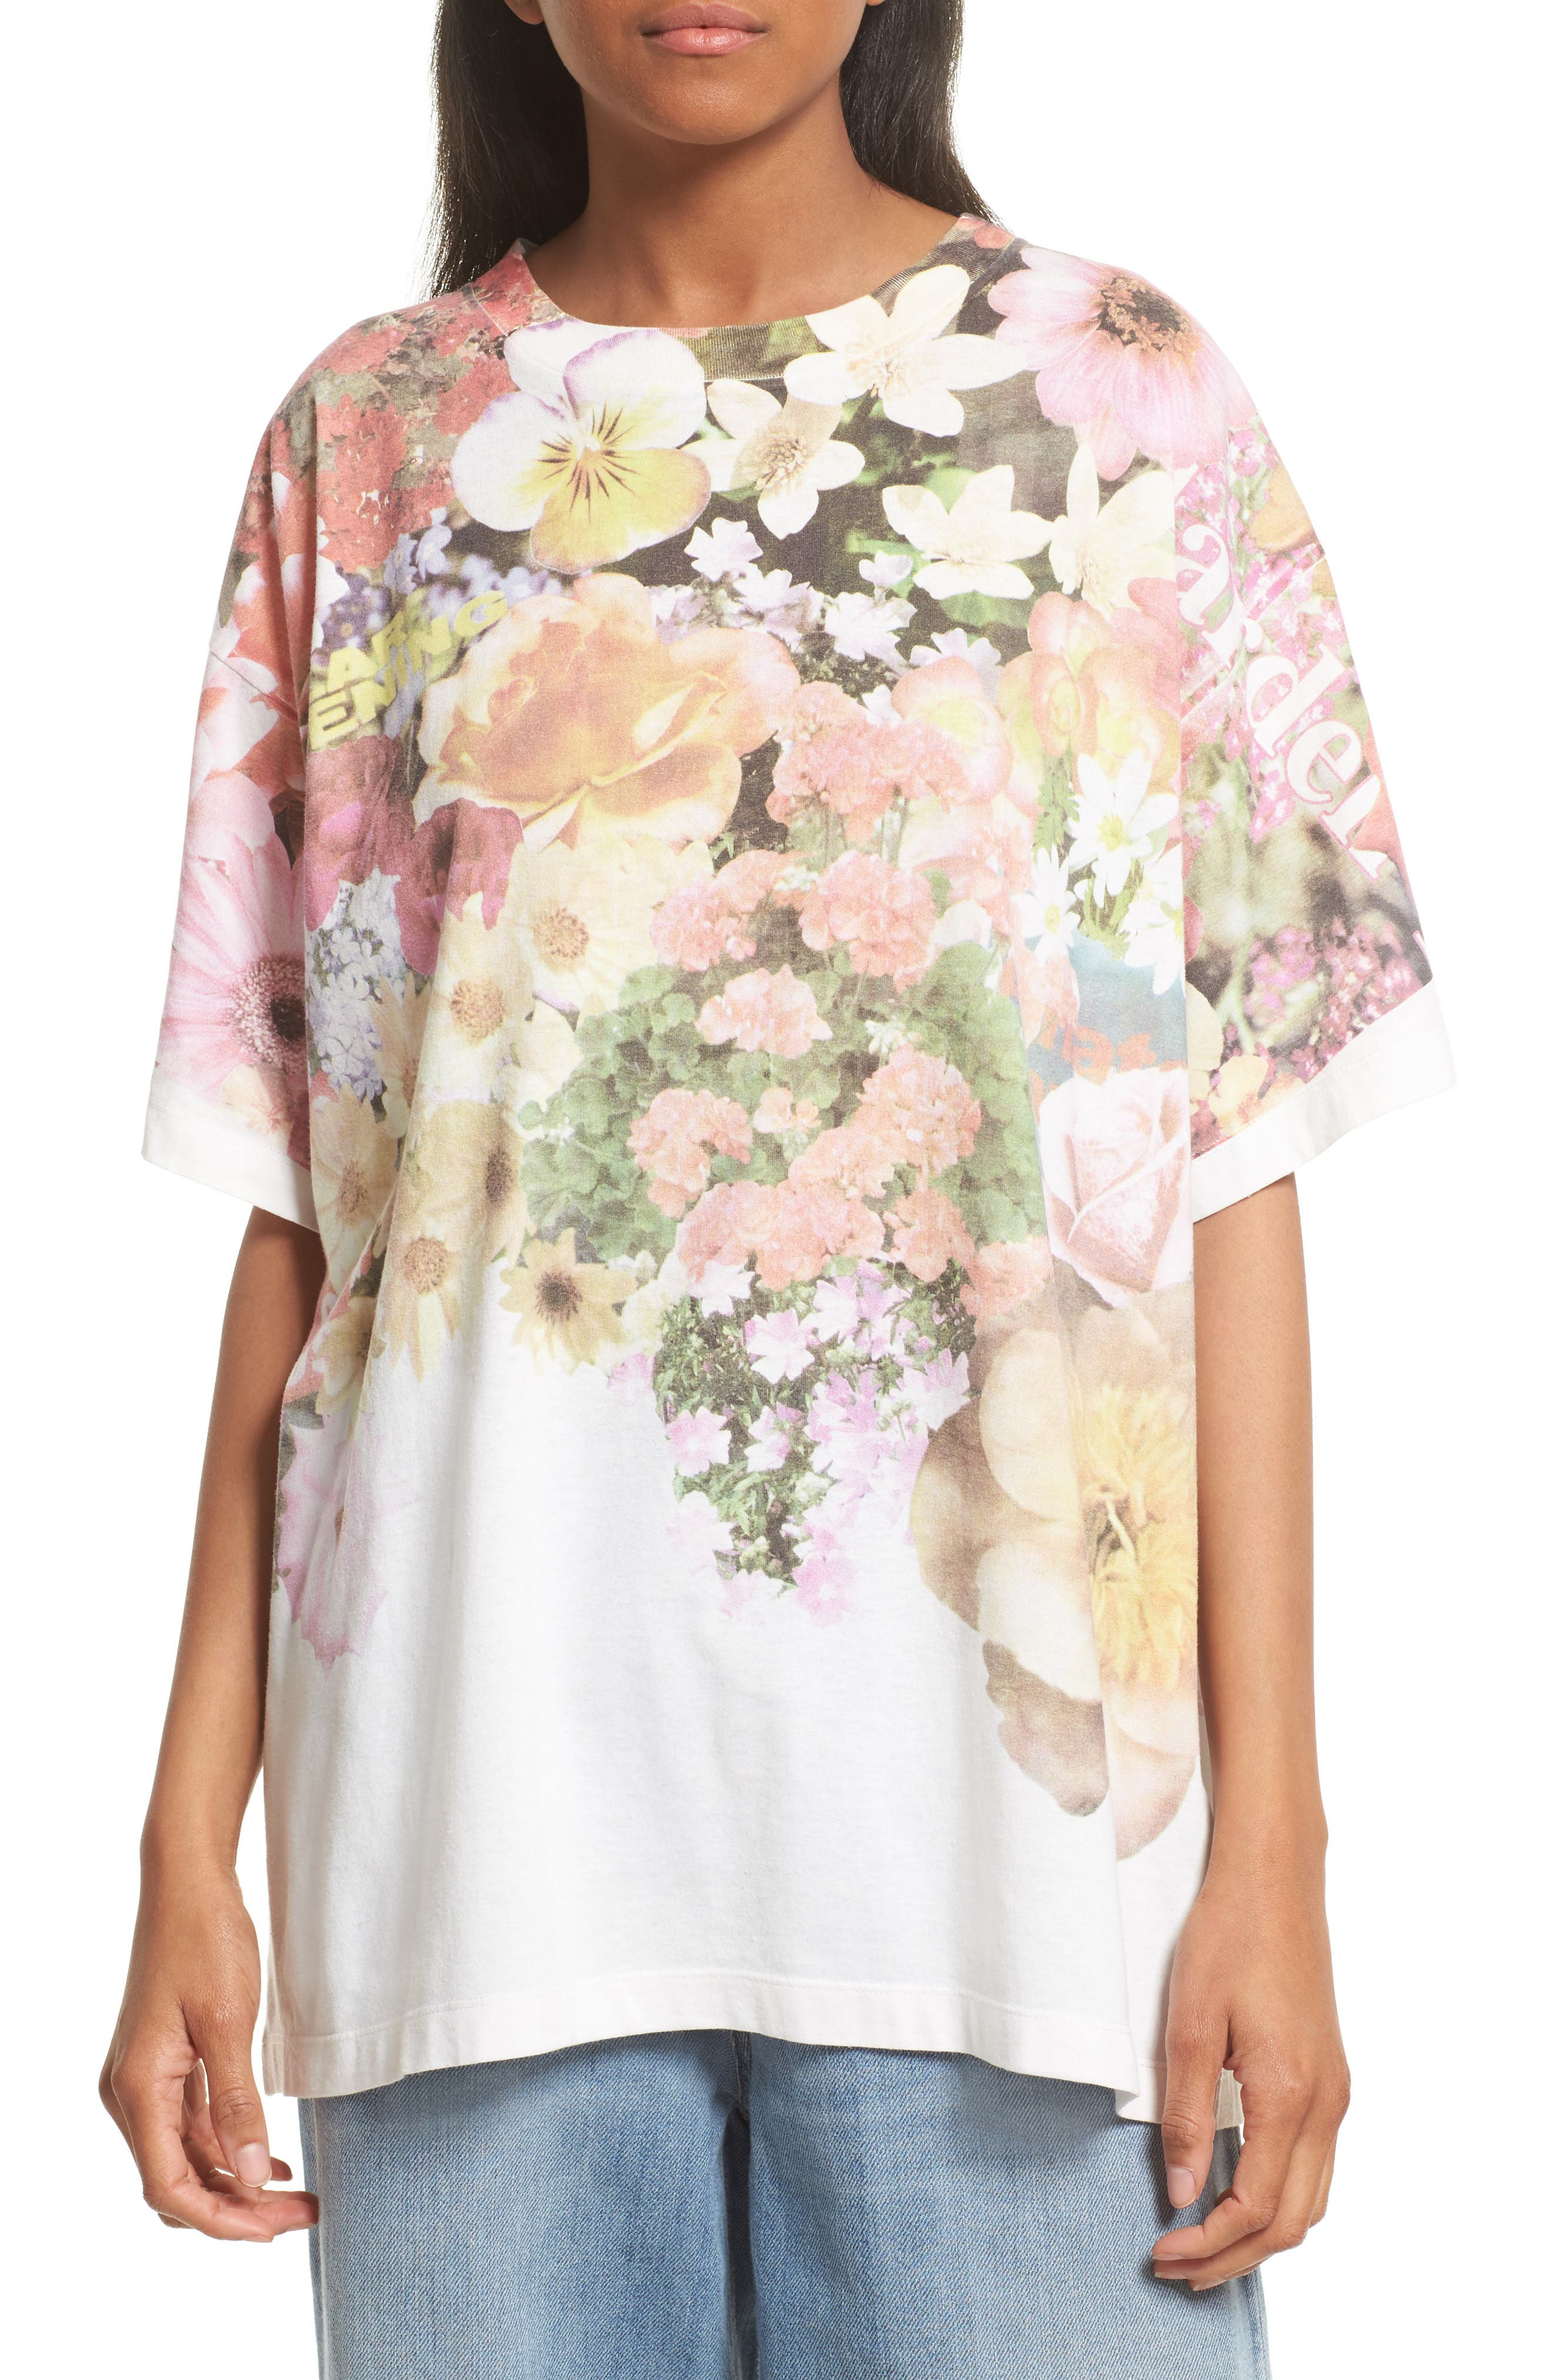 Alternate Image 1 Selected - MM6 Maison Margiela Floral Print Tee